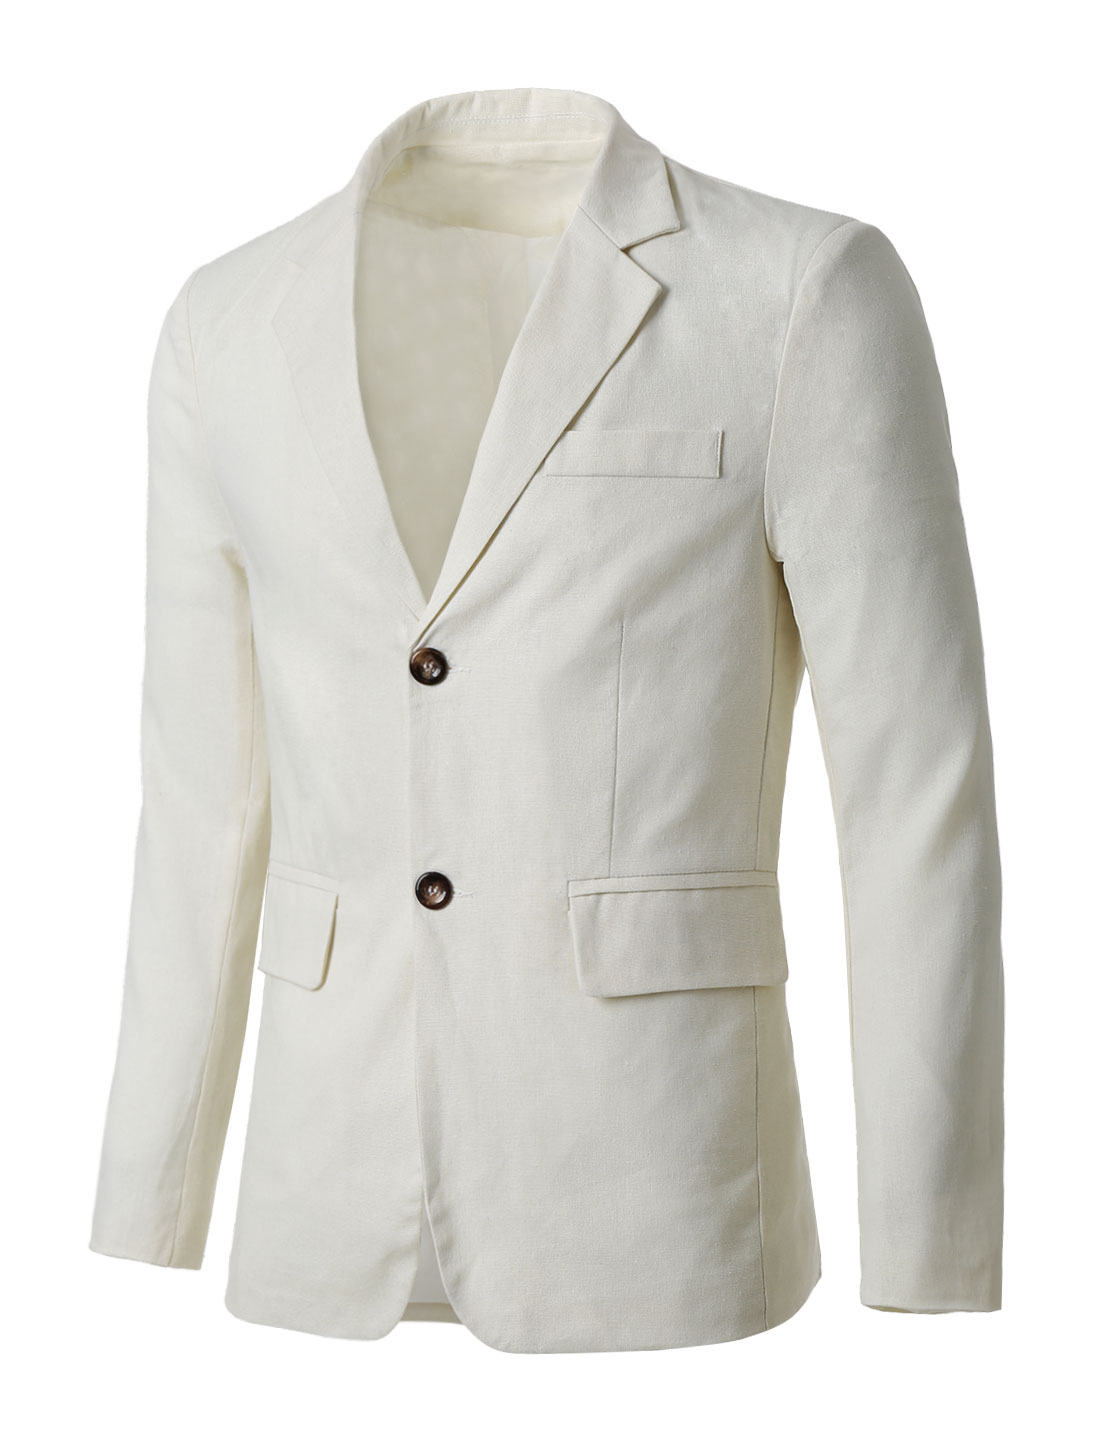 Man Notched Lapel Padded Shoulders Two-Button Long Sleeves Blazer Off White S